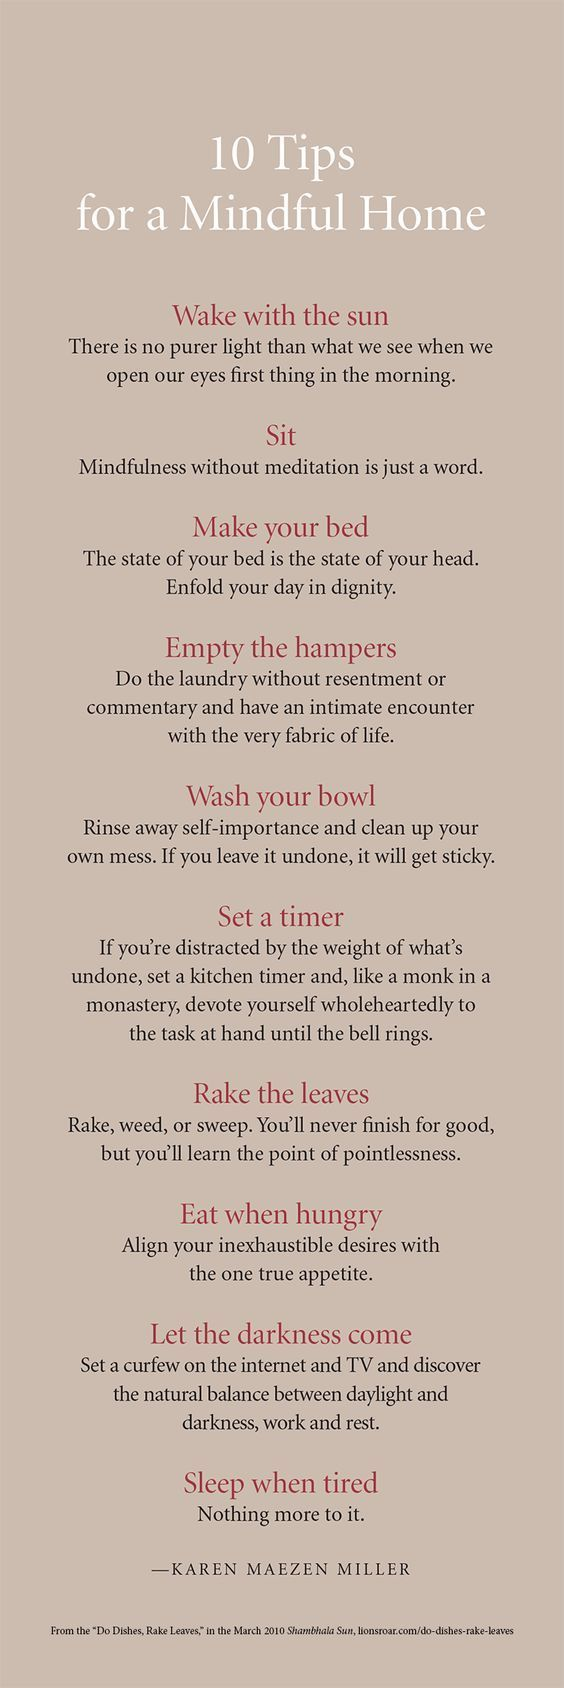 10 tips for a Mindful Home. Click On The Picture To Watch Our Free Videos On Different Topics, From Mindfulness to Self-Esteem And A Lot More.*****